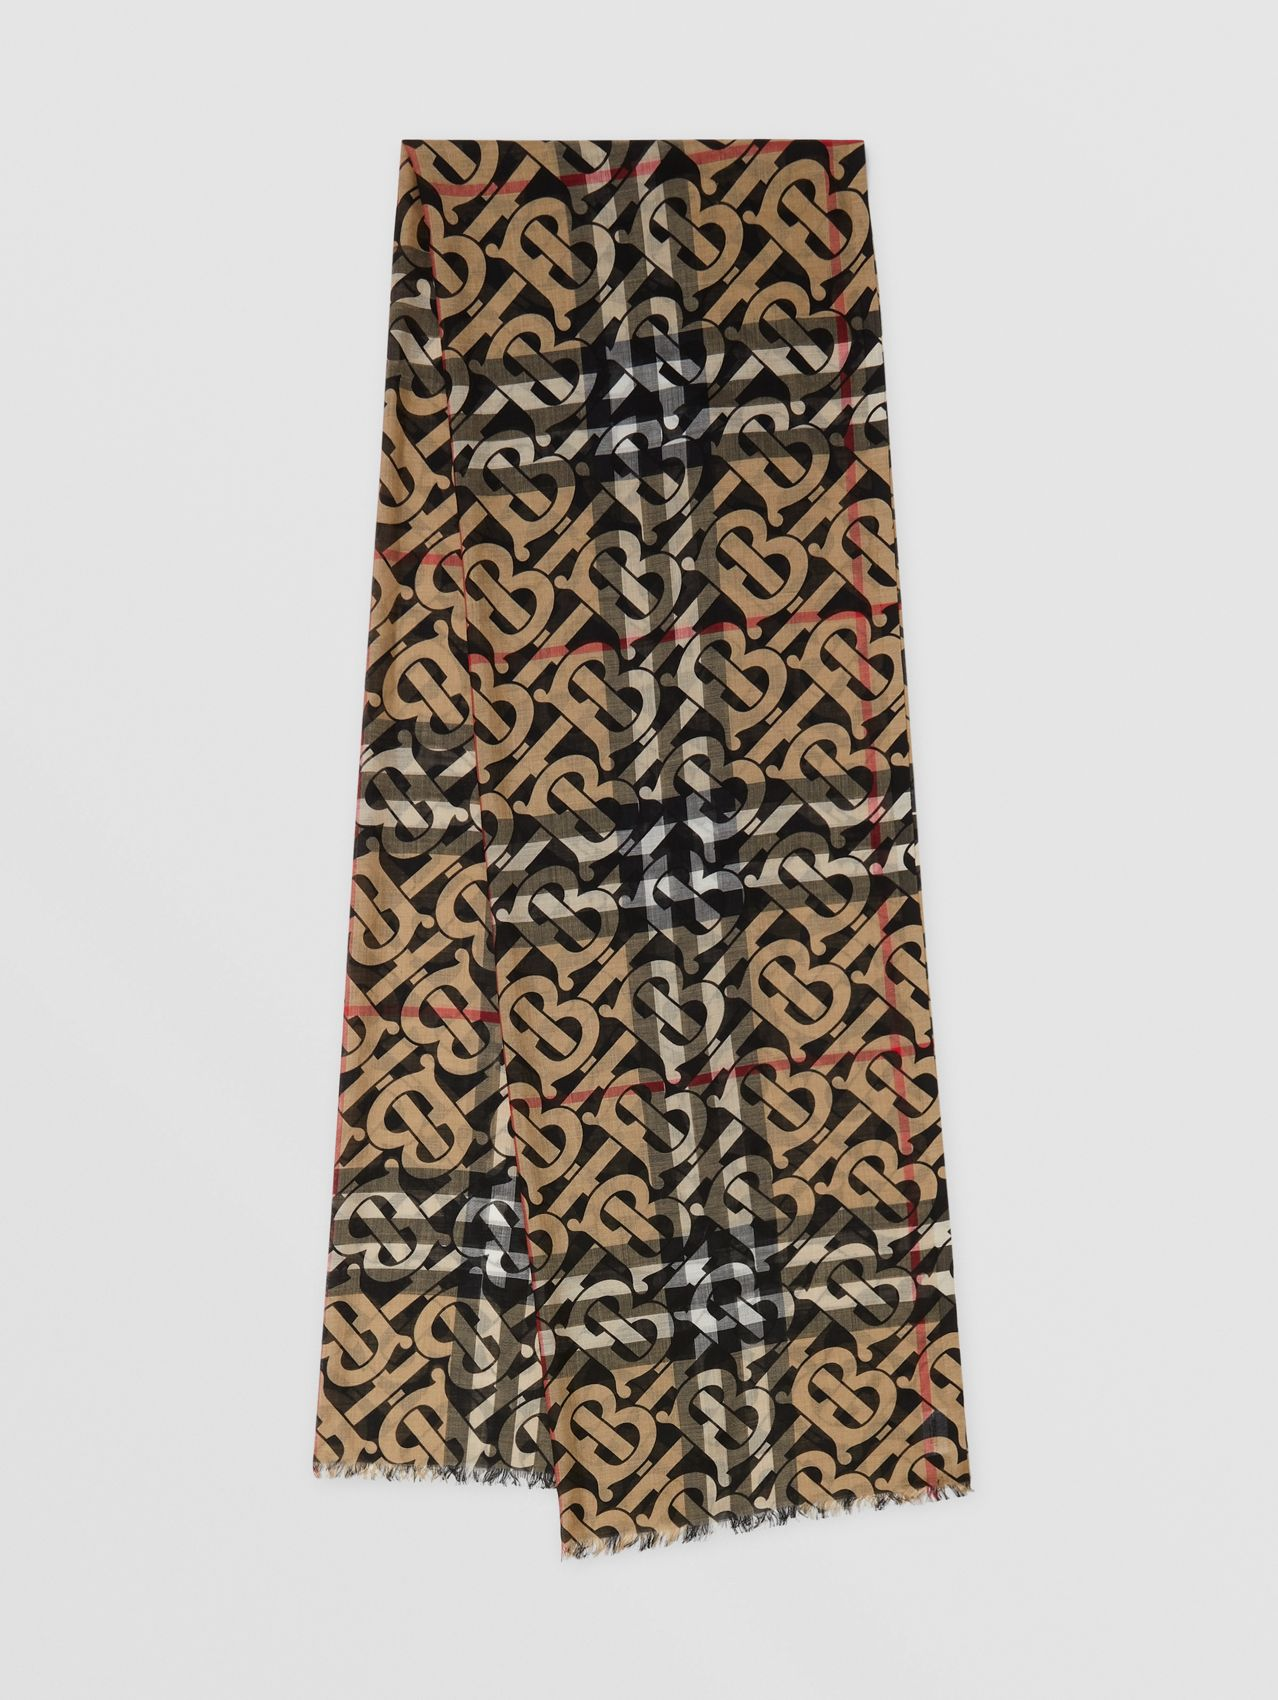 Monogram Print Lightweight Check Wool Silk Scarf in Archive Beige